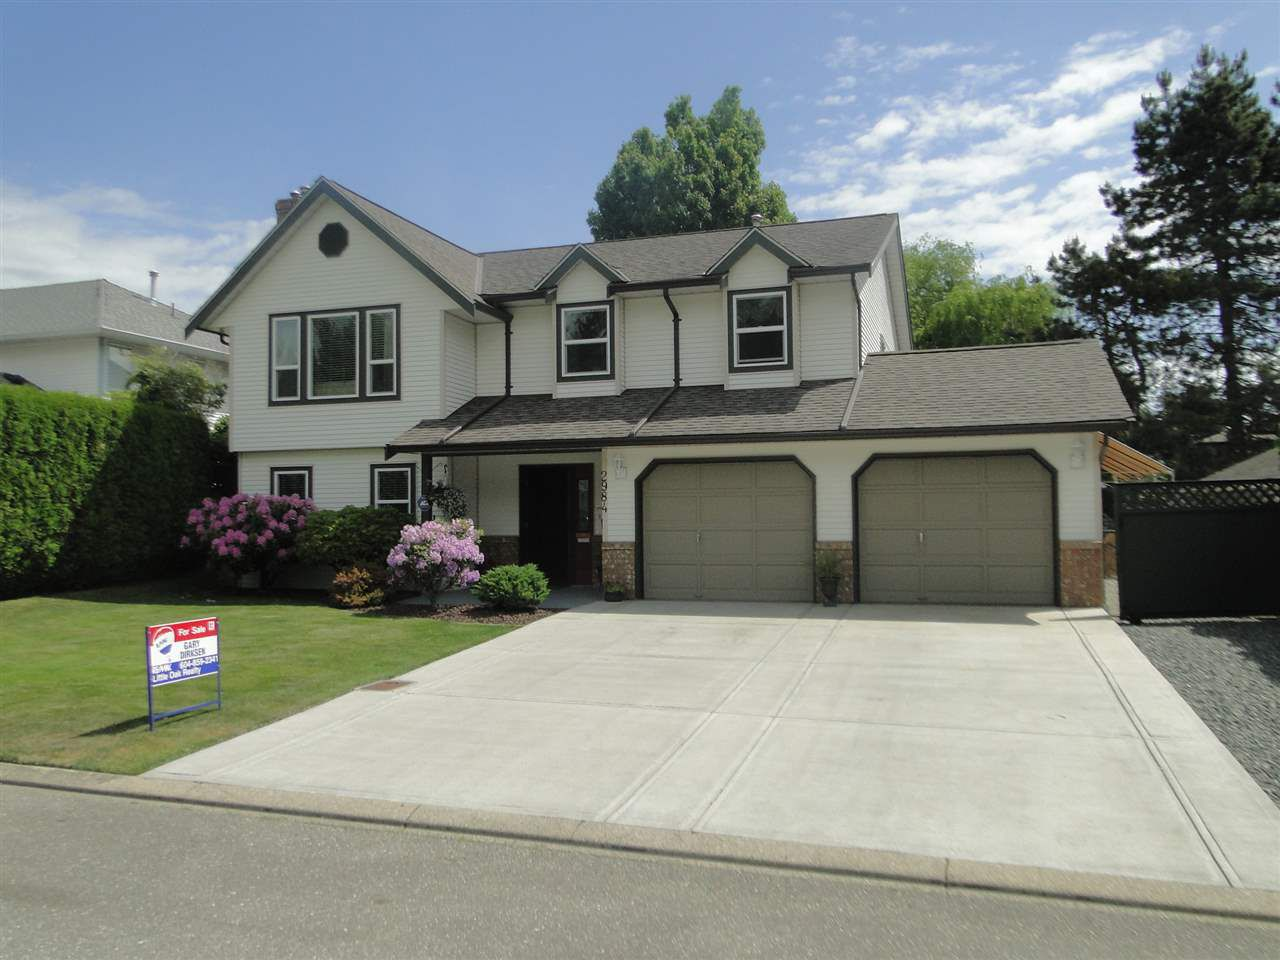 Main Photo: 2984 EASTVIEW Street in Abbotsford: Central Abbotsford House for sale : MLS®# R2272510